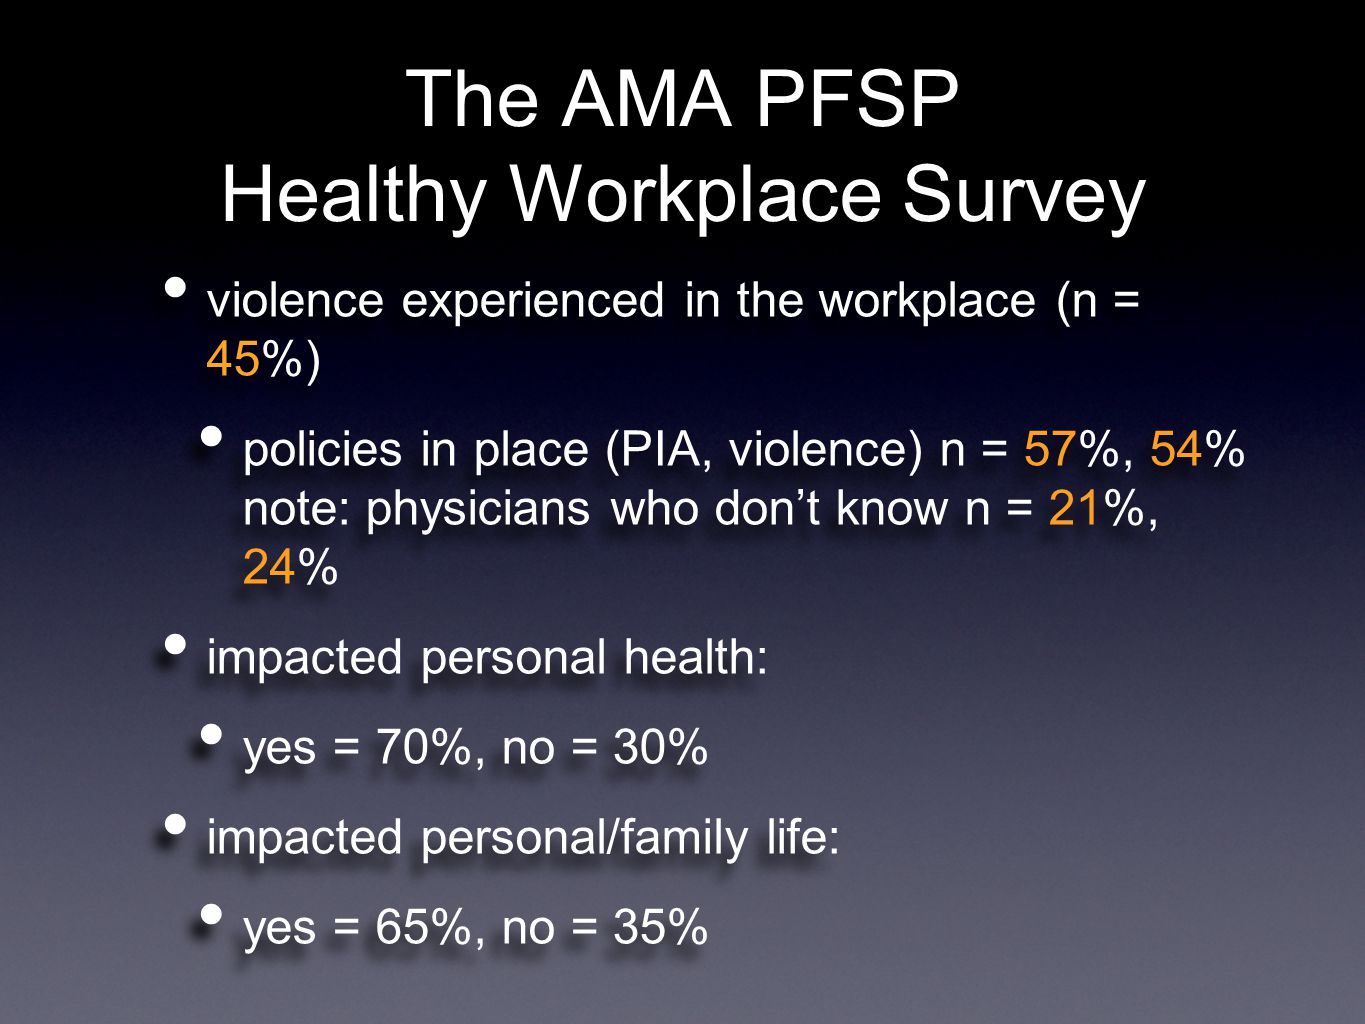 The AMA PFSP Healthy Workplace Survey violence experienced in the workplace (n = 45%) policies in place (PIA, violence) n = 57%, 54% note: physicians who don't know n = 21%, 24% impacted personal health: yes = 70%, no = 30% impacted personal/family life: yes = 65%, no = 35% violence experienced in the workplace (n = 45%) policies in place (PIA, violence) n = 57%, 54% note: physicians who don't know n = 21%, 24% impacted personal health: yes = 70%, no = 30% impacted personal/family life: yes = 65%, no = 35%